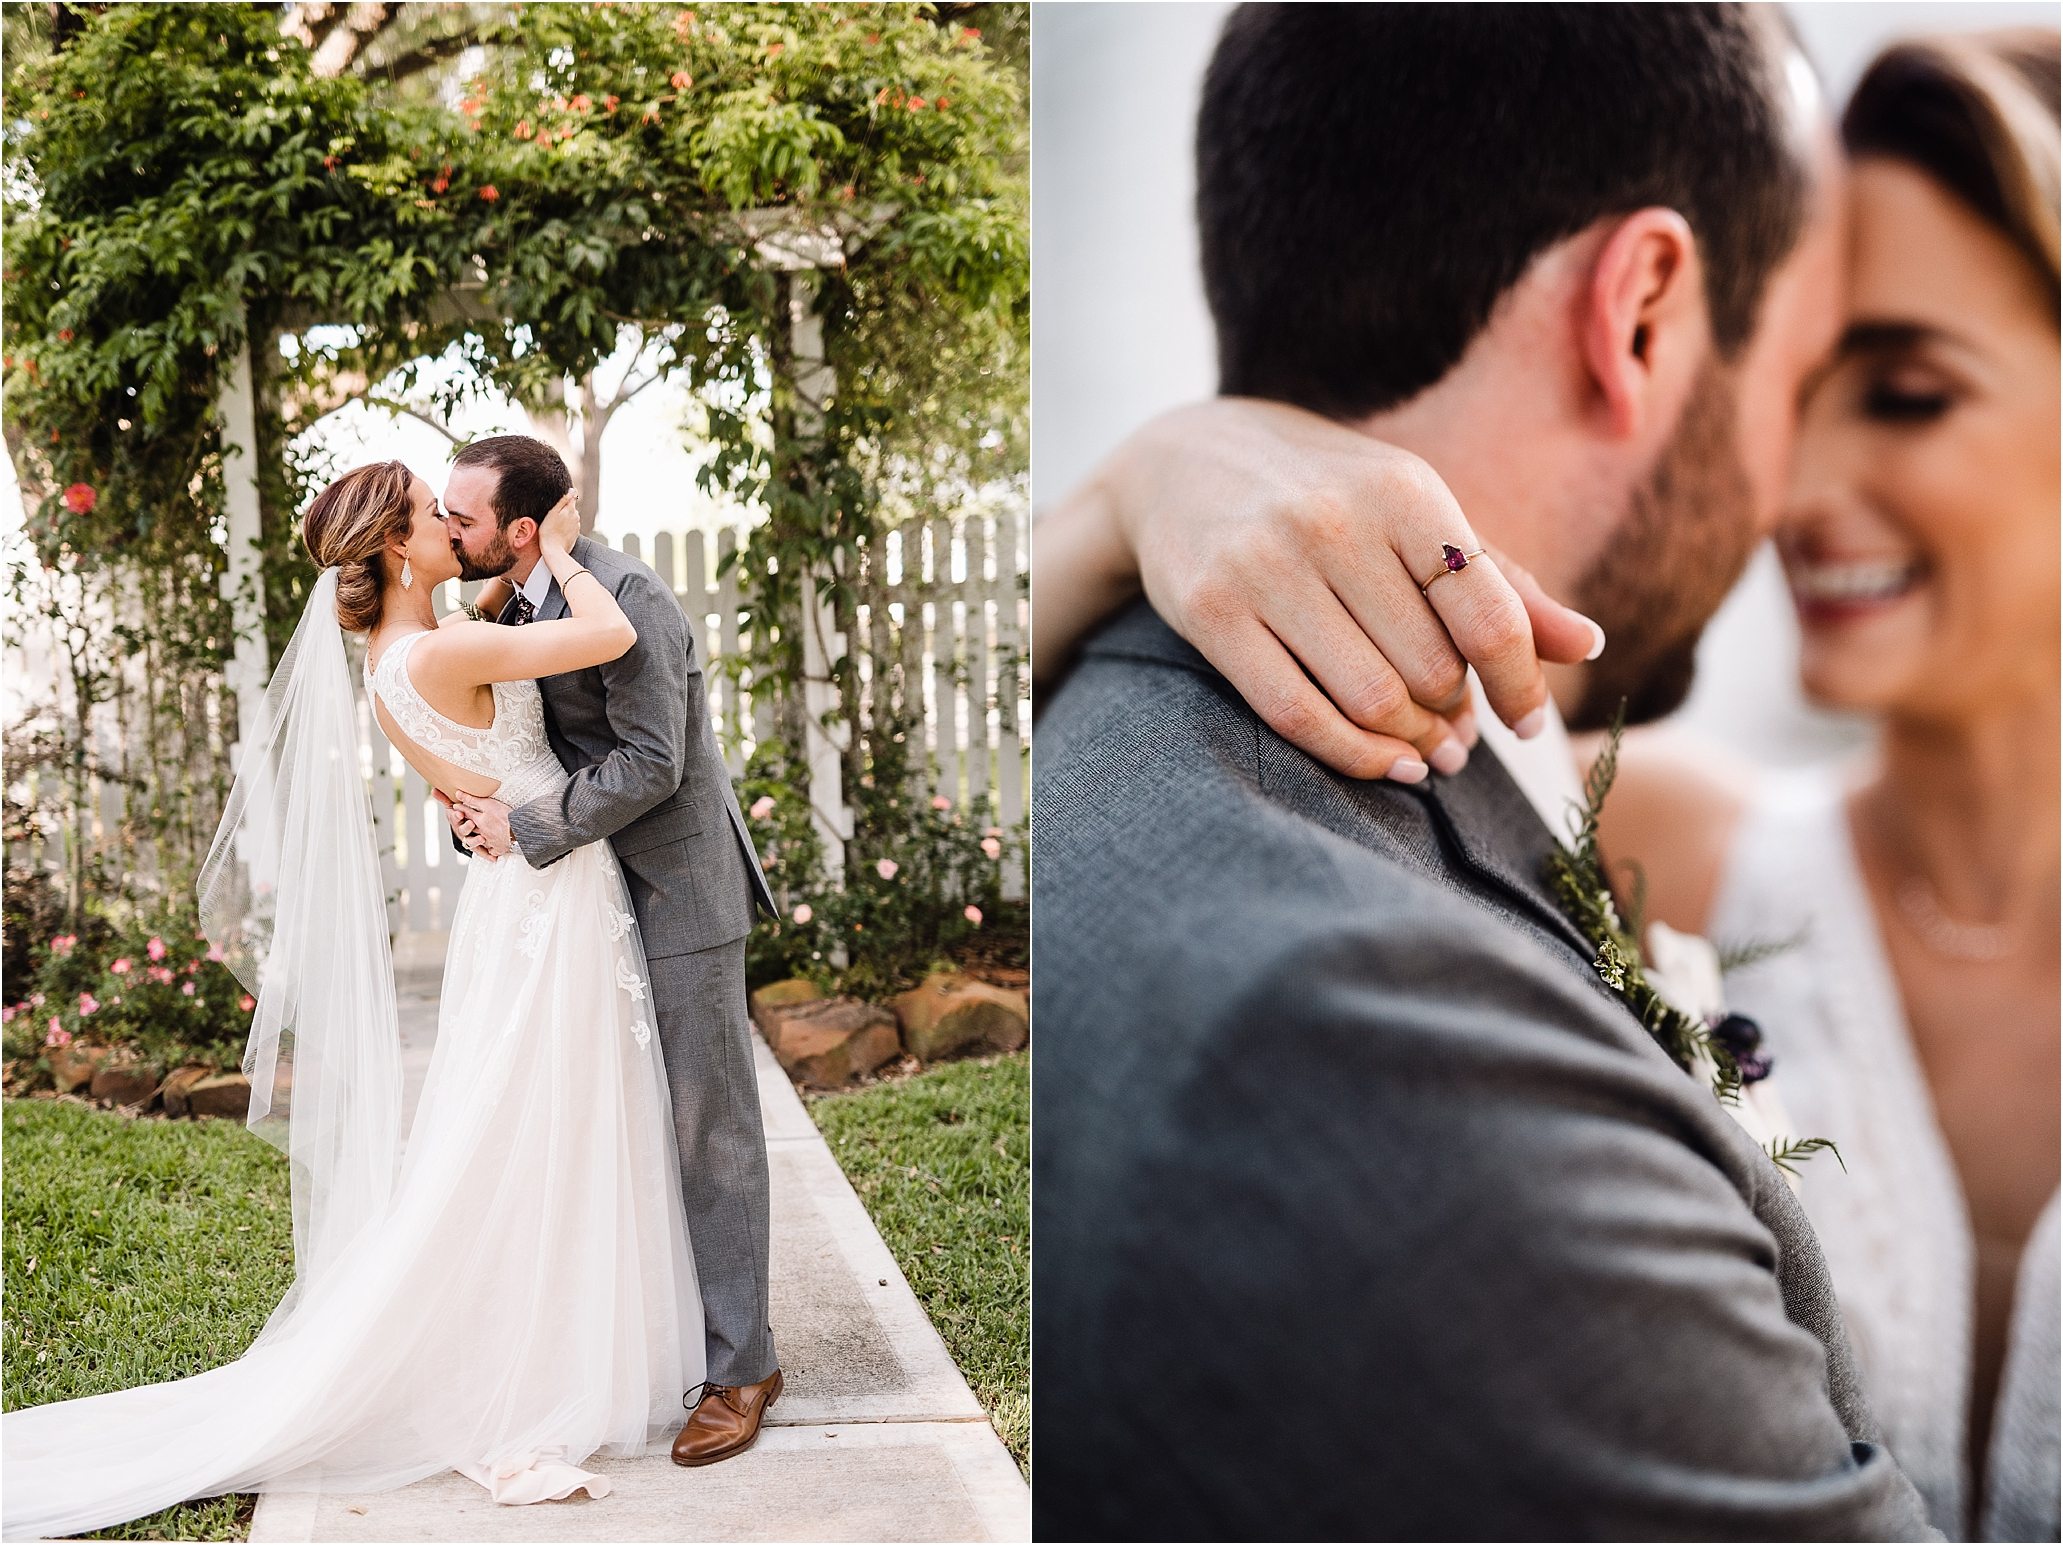 PattisonHouse_TexasWeddingPhotographer_CarlyCrockett&MattBrownWedding_0065.jpg